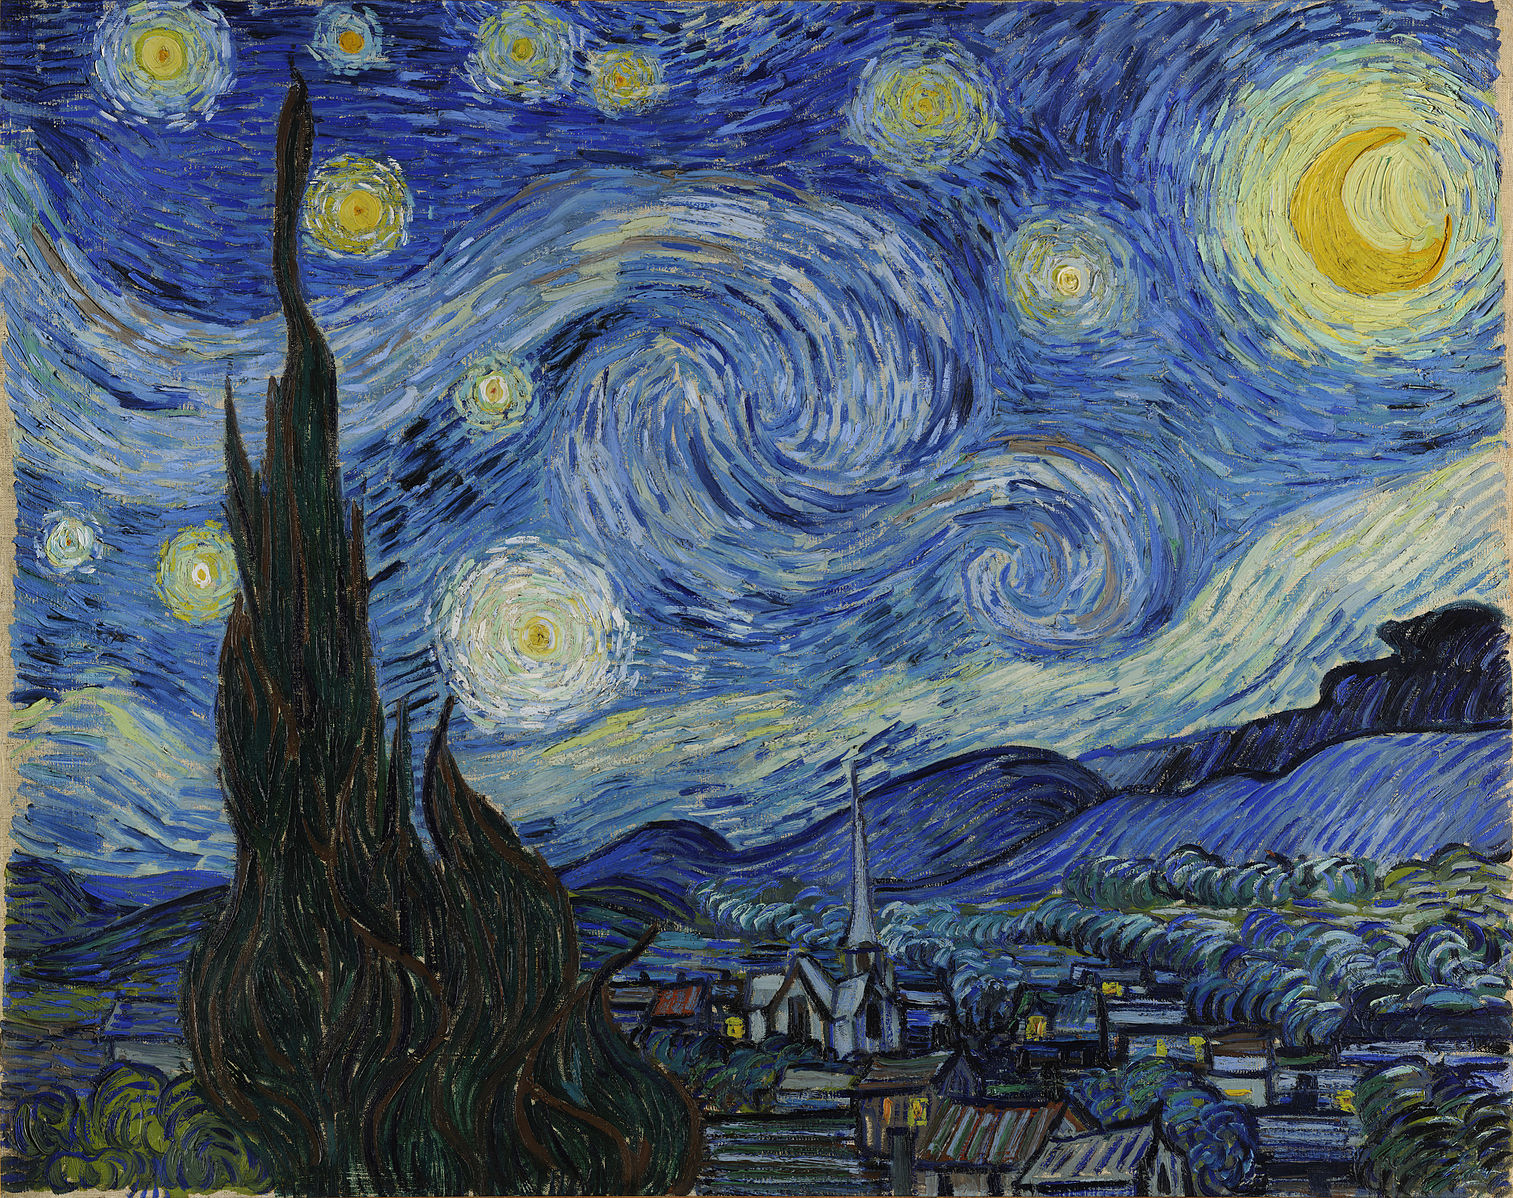 Constellation Piercings: The Starry Night – Vincent Van Gogh